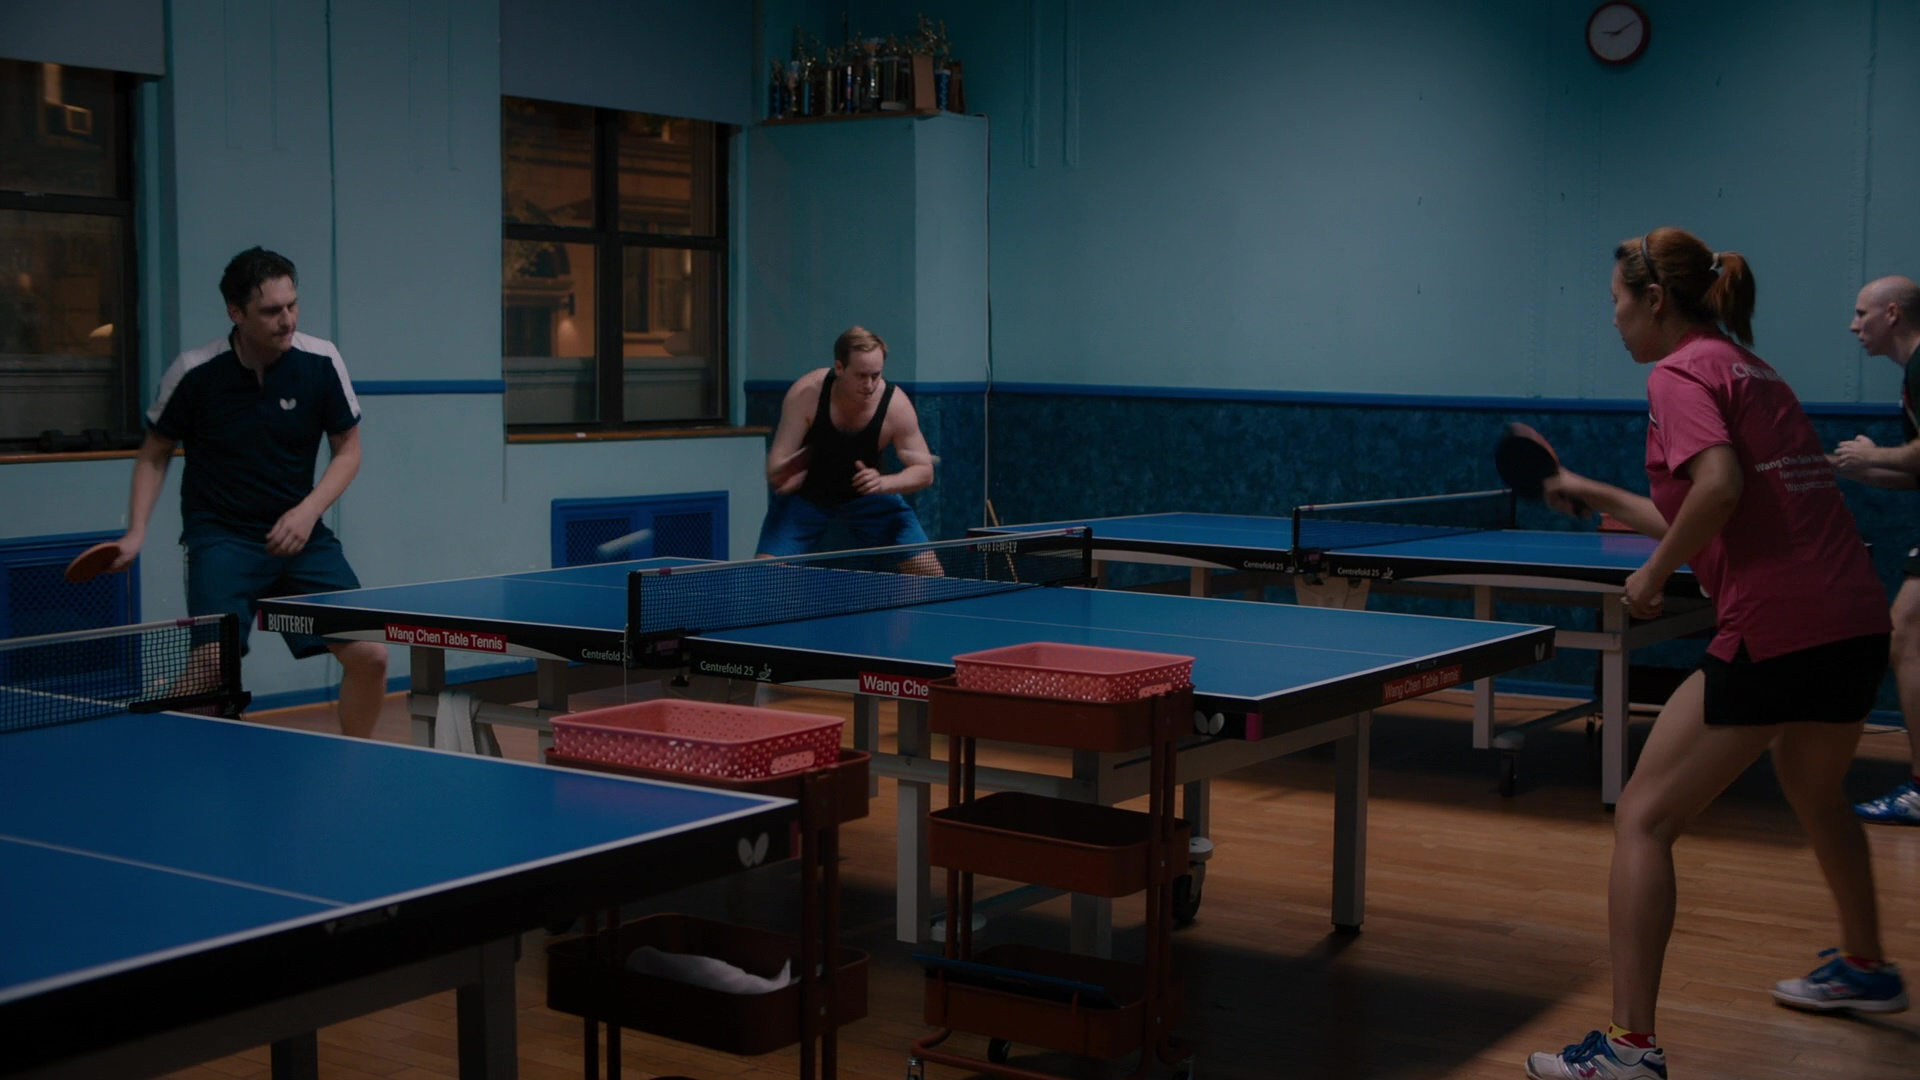 Butterfly ping pong table tennis table used by toby - Butterfly table tennis official website ...